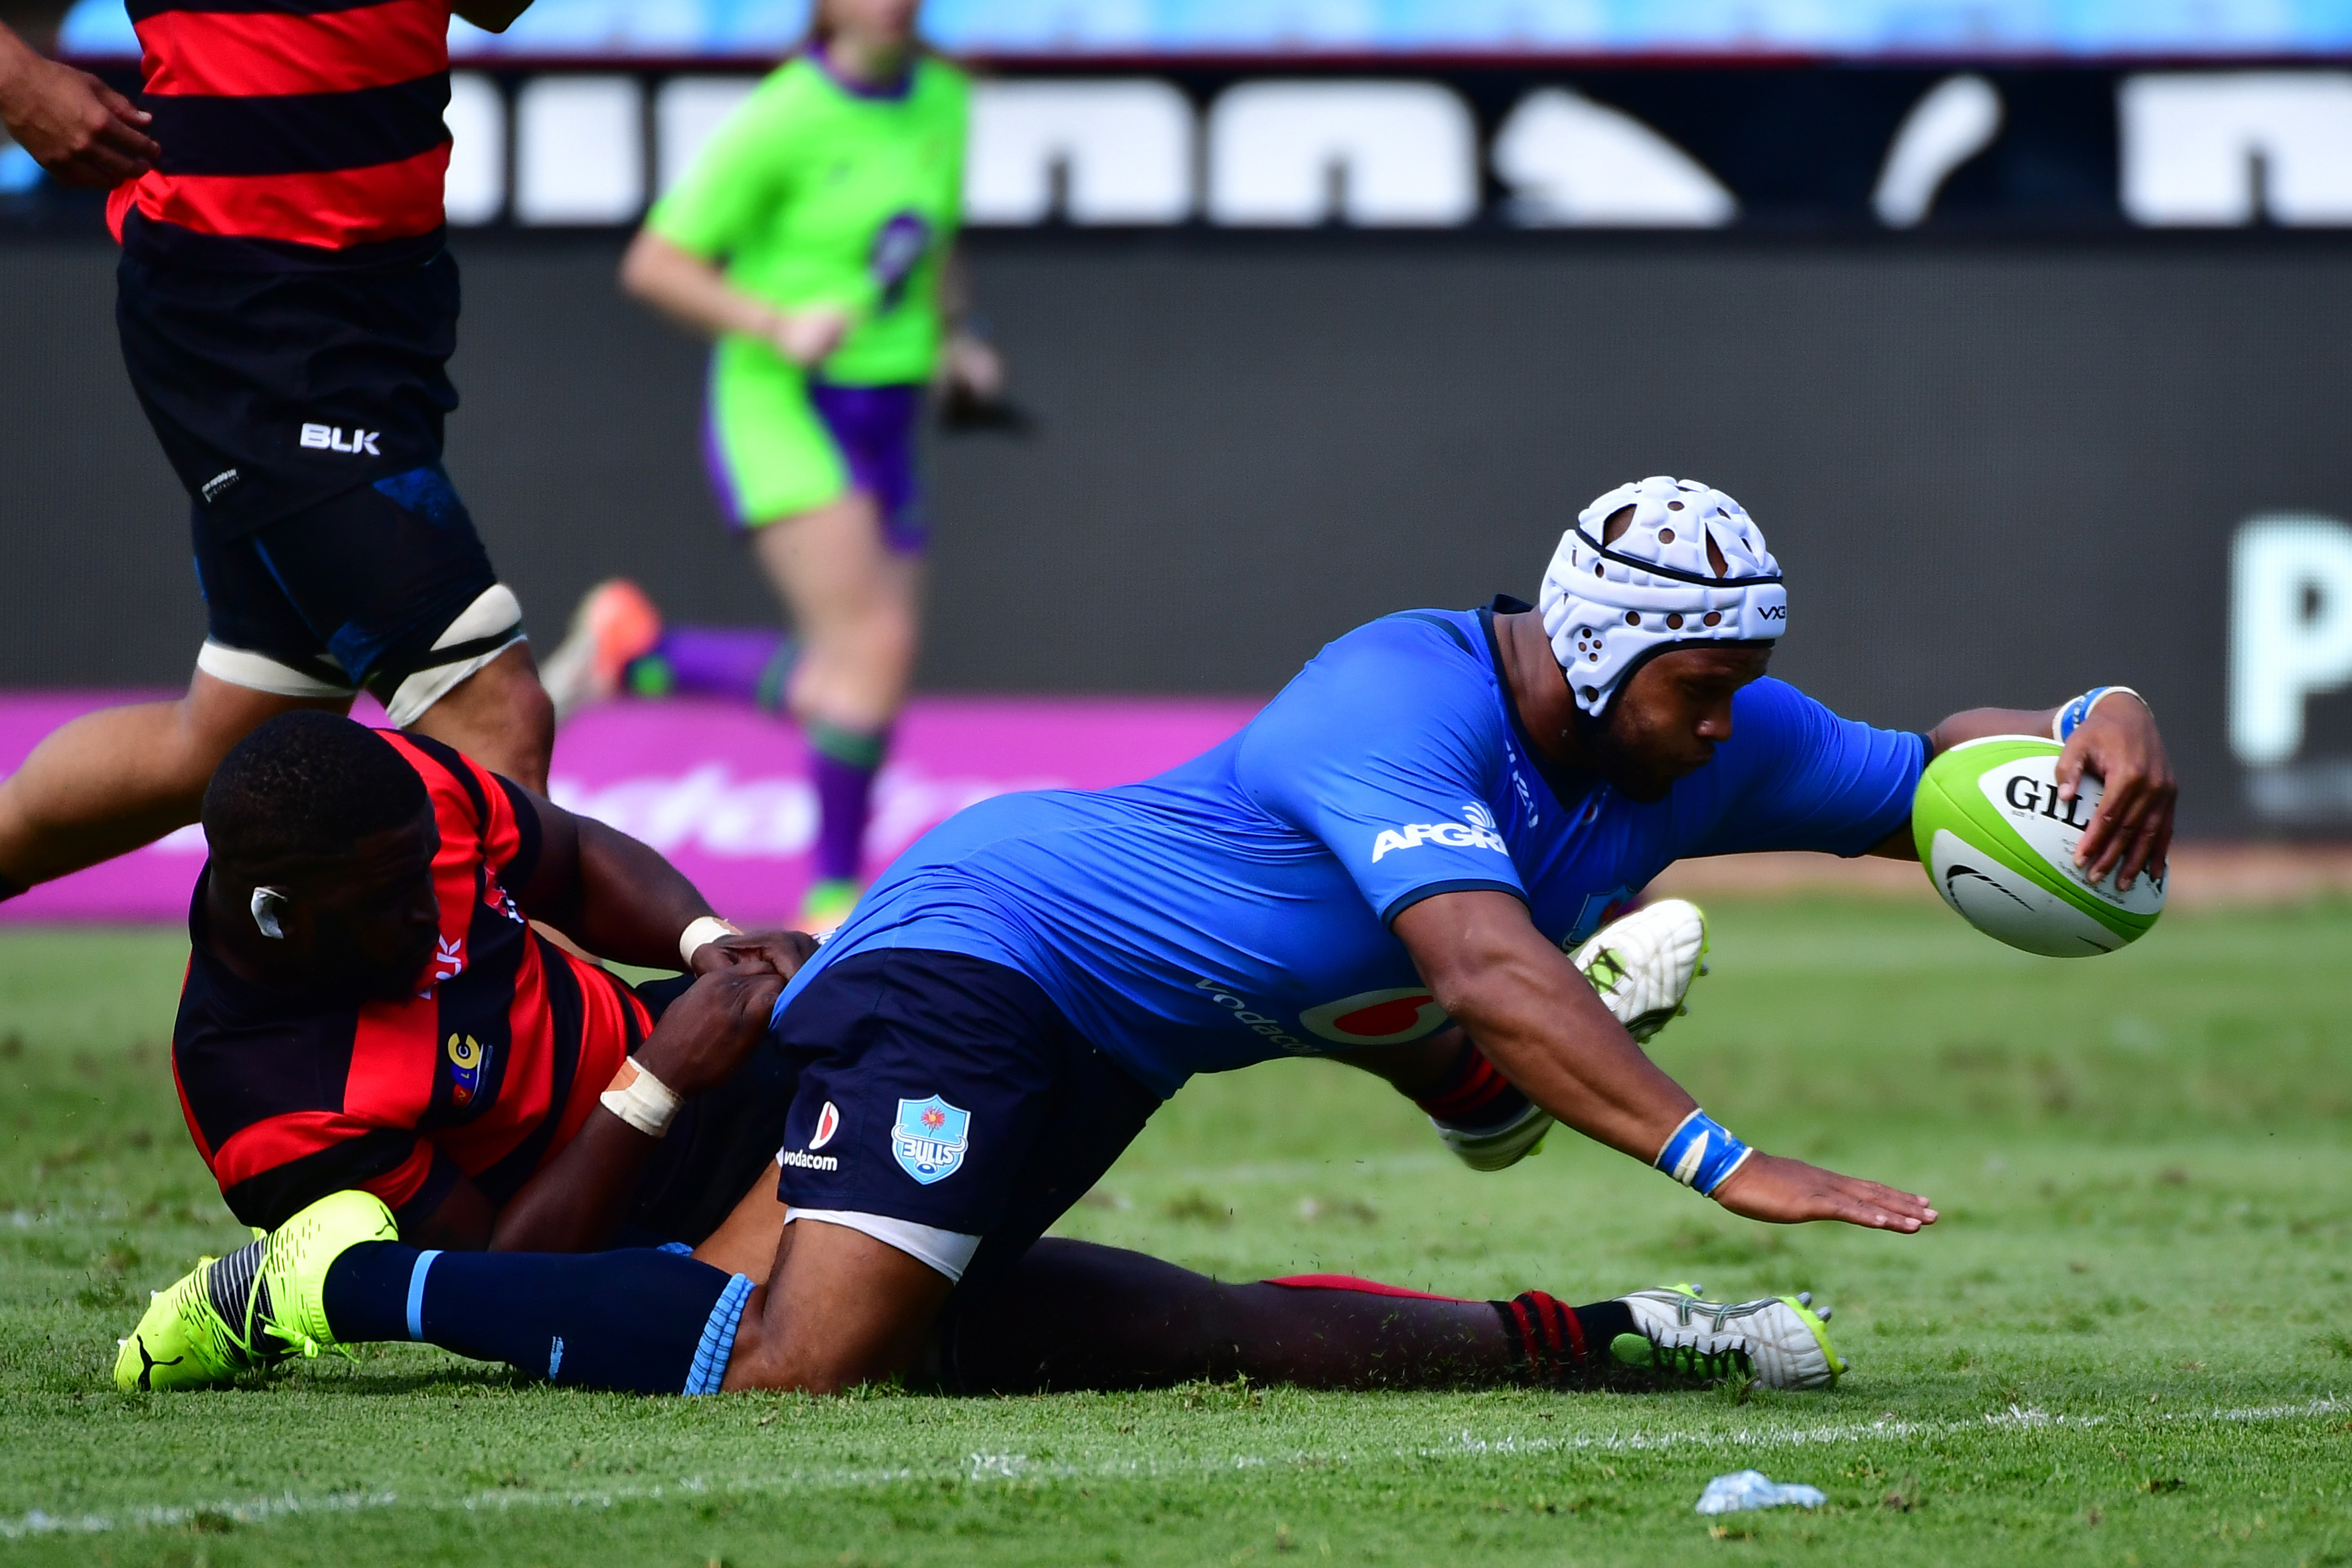 Vodacom Bulls aim for consistency in selection for New Nation Pumas clash